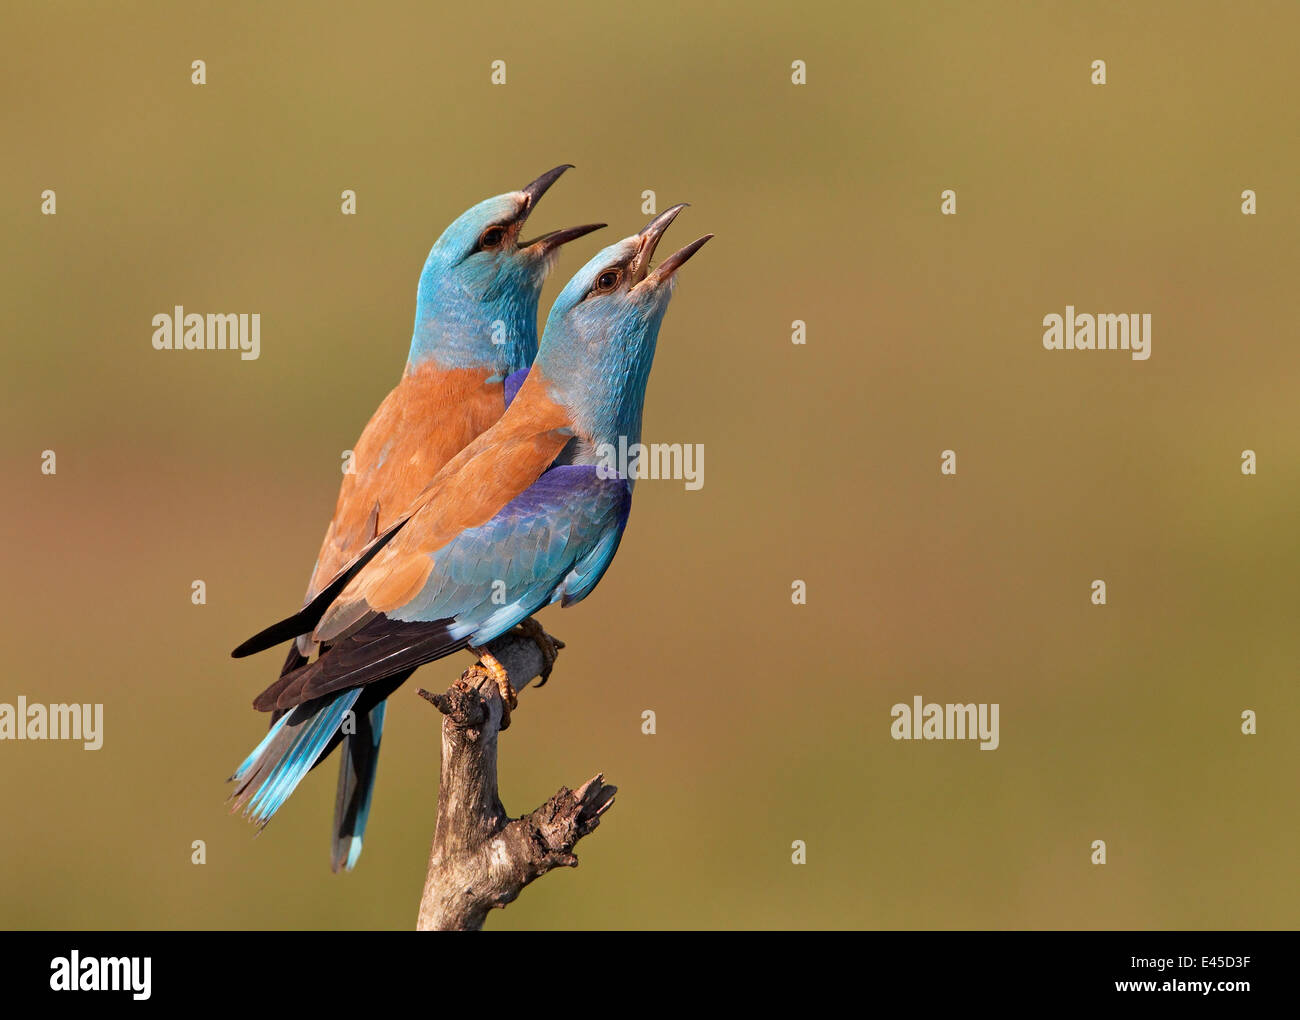 European Roller (Coracias garrulus) pair vocalising, Pusztaszer, Hungary, May 2008 Stock Photo